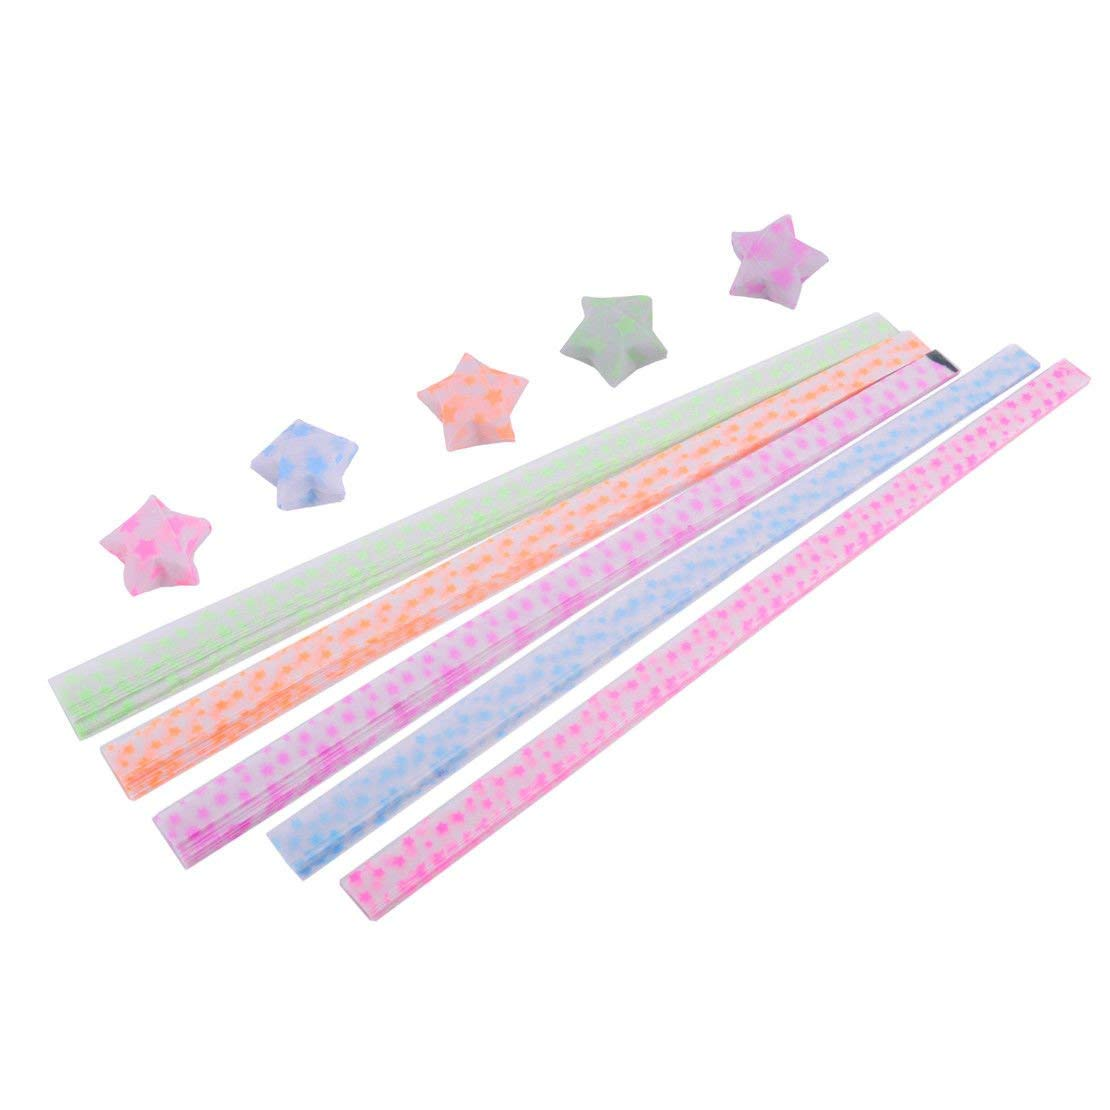 100 Strips//set Paper Quilling Strips set Mixed Color Origami Paper DIY Hand Craft 5mm Width,Pink by Crqes